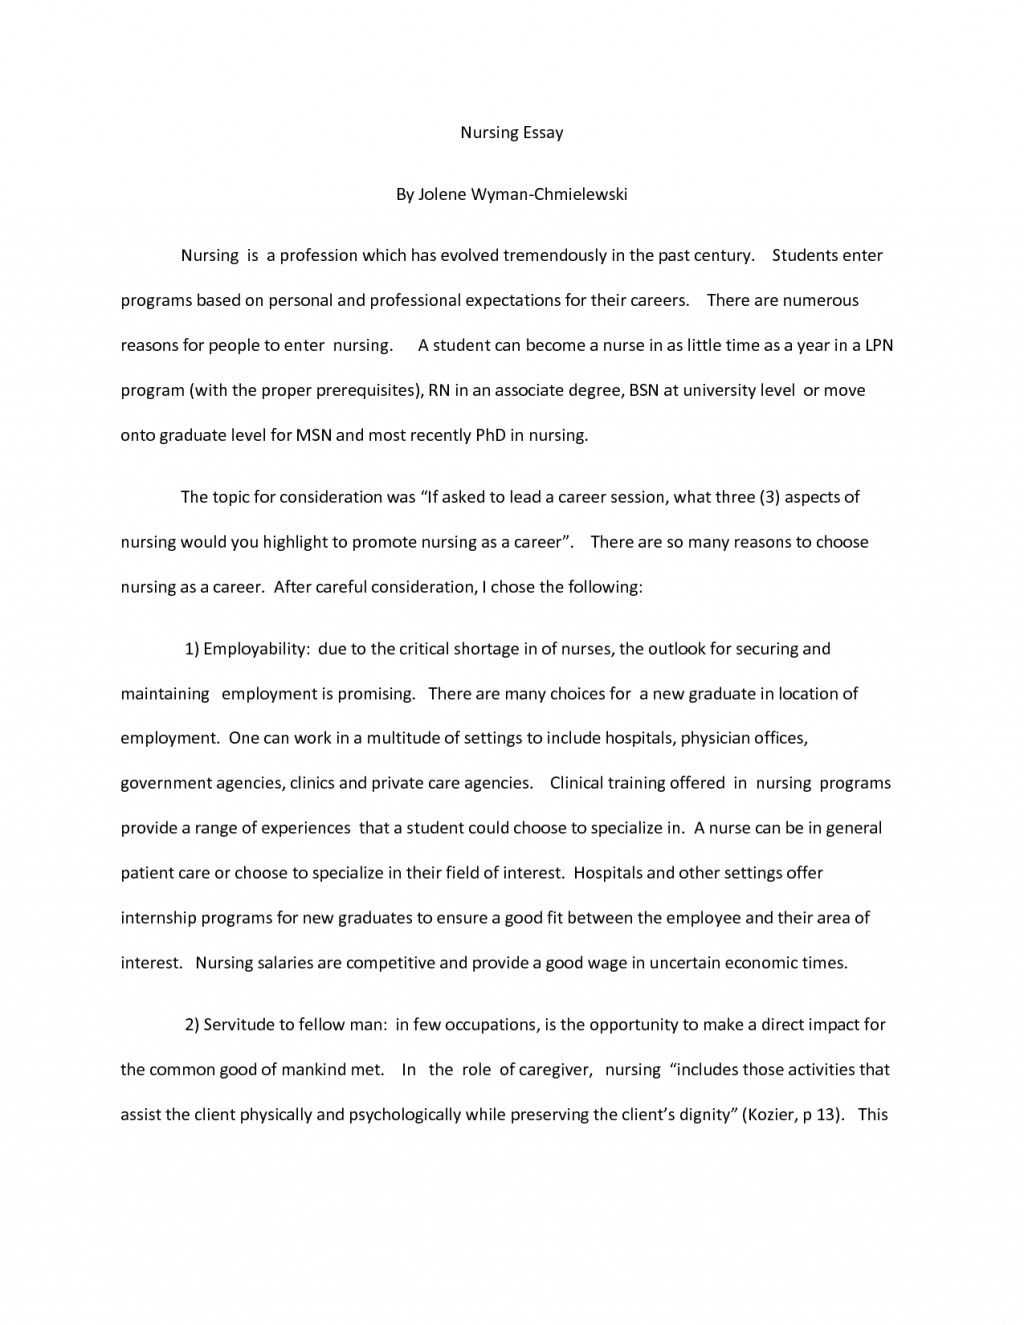 003 Nurse Application Essay Format Medical Nursing School Samples Colleges Graduate Scholarship Essays Personal Of Great Grad Applying To Fearsome For Admission Large